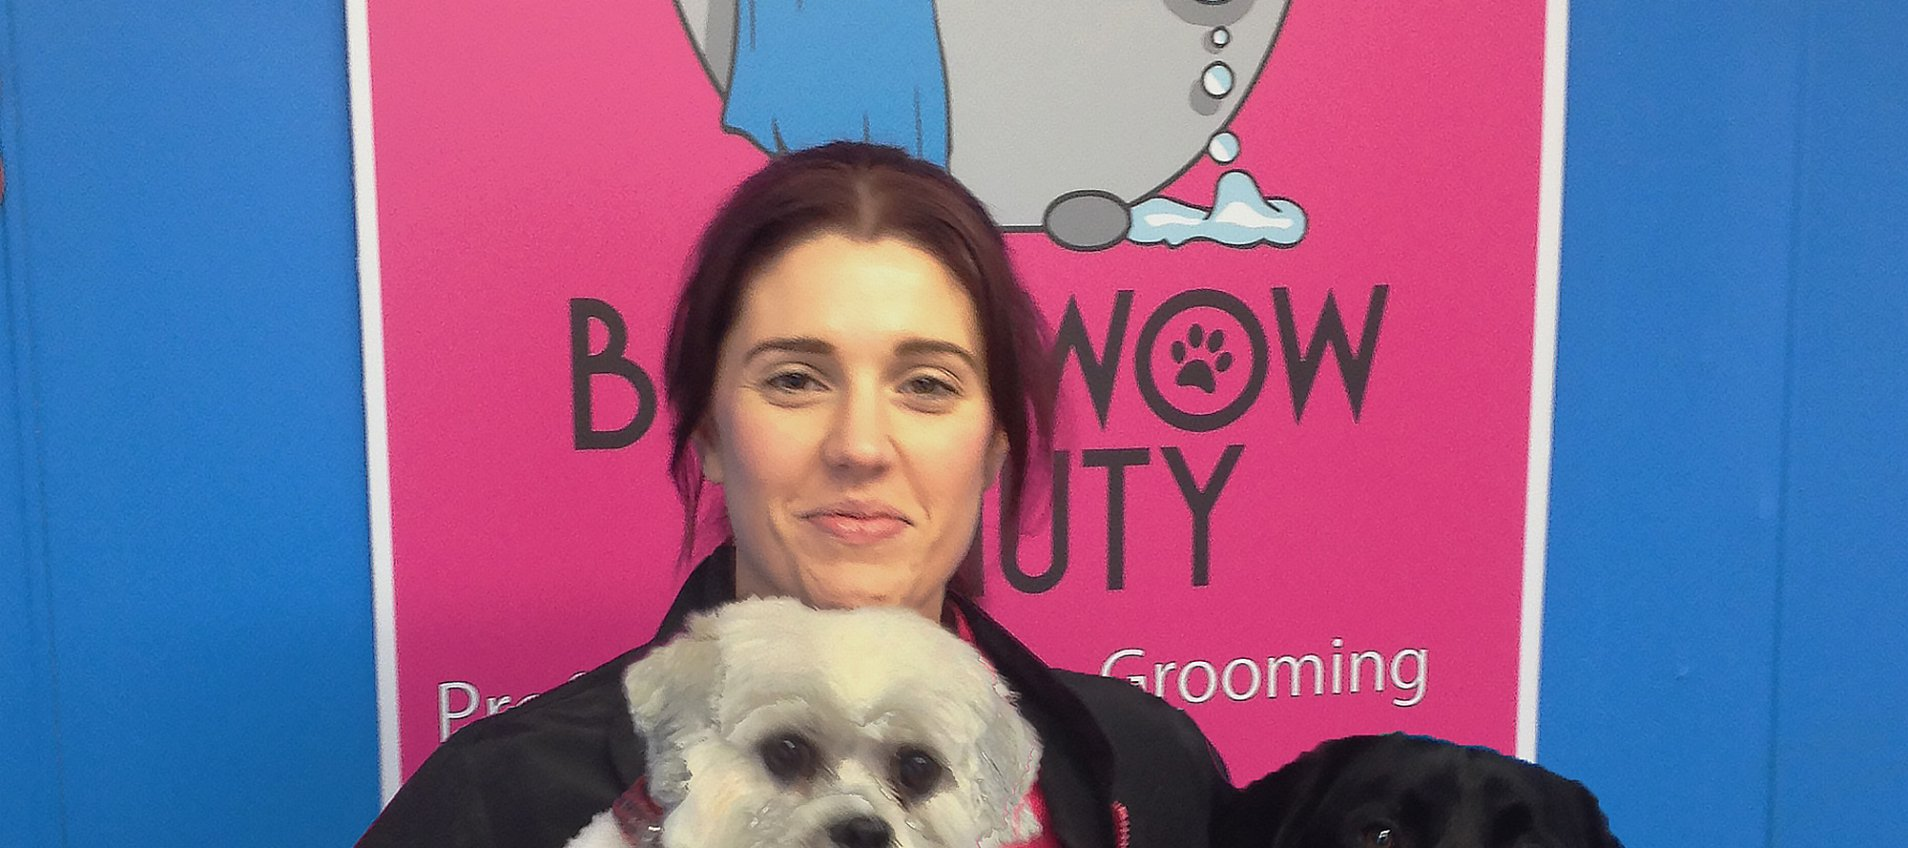 Bow Wow Beauty - Grooming & Booming!